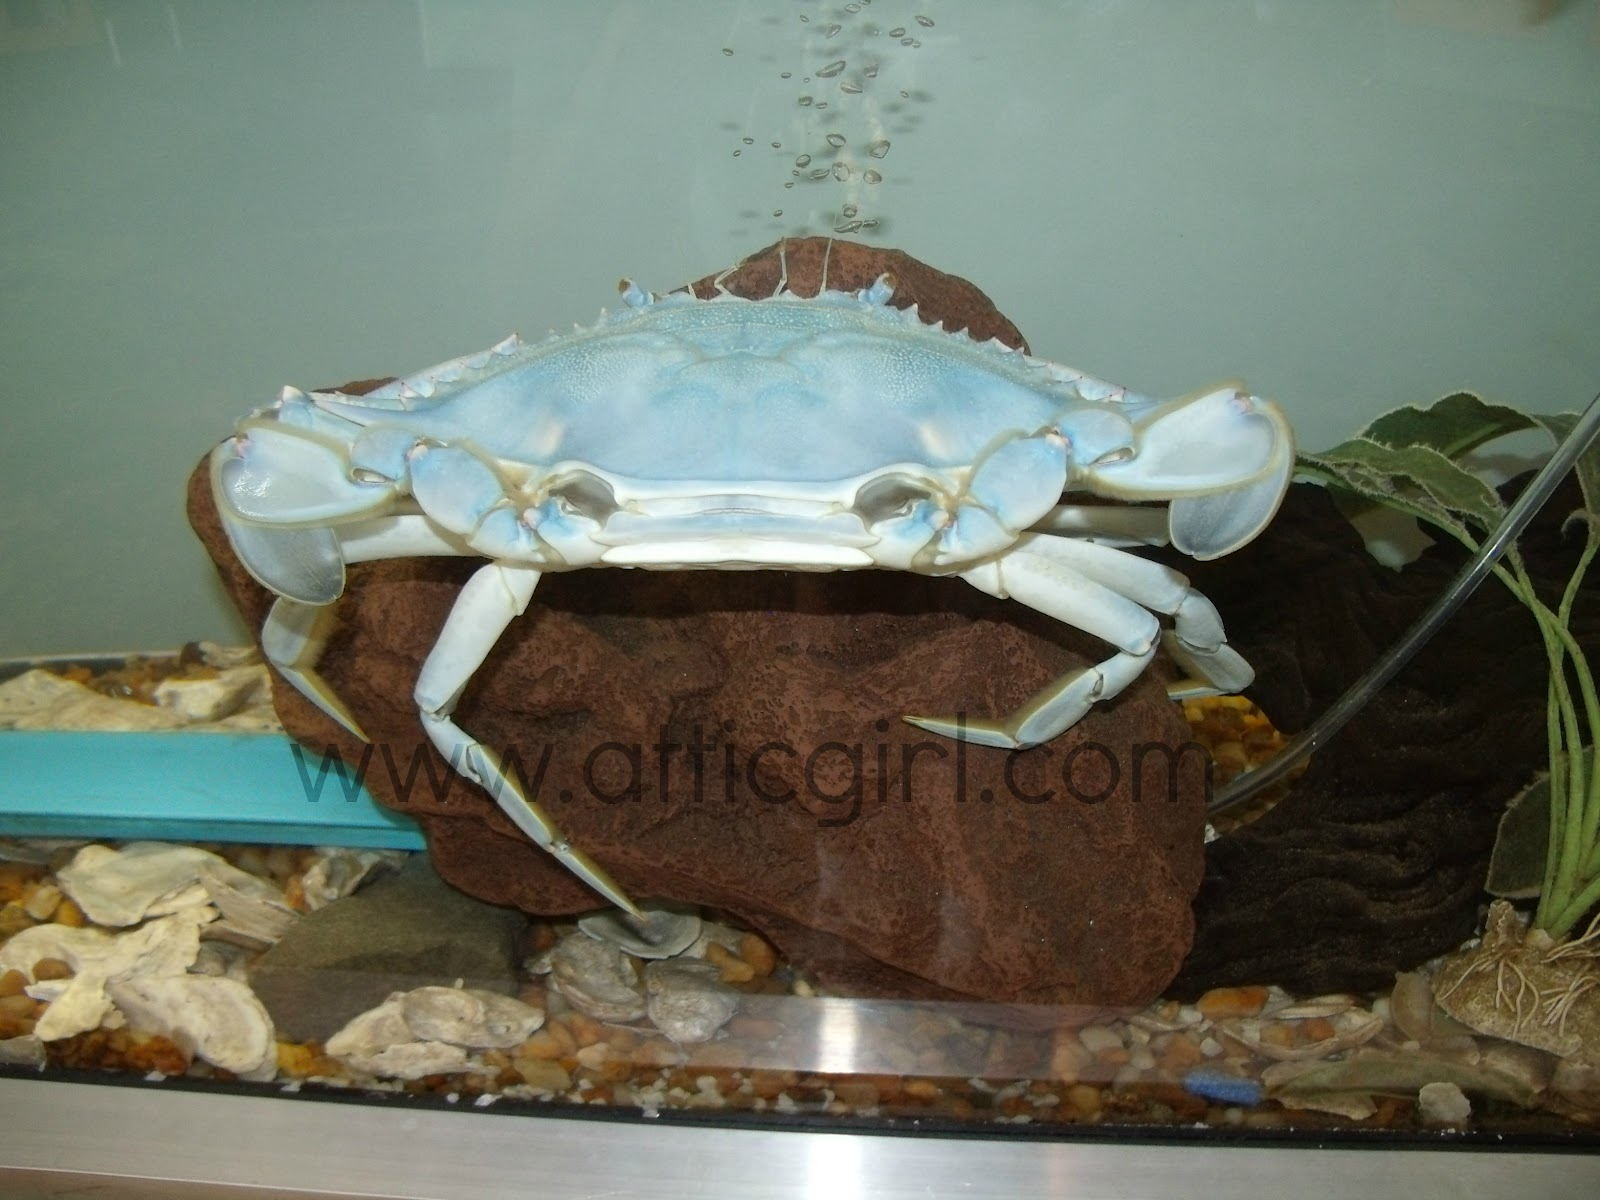 Maryland Science Center, aquarium, blue crab